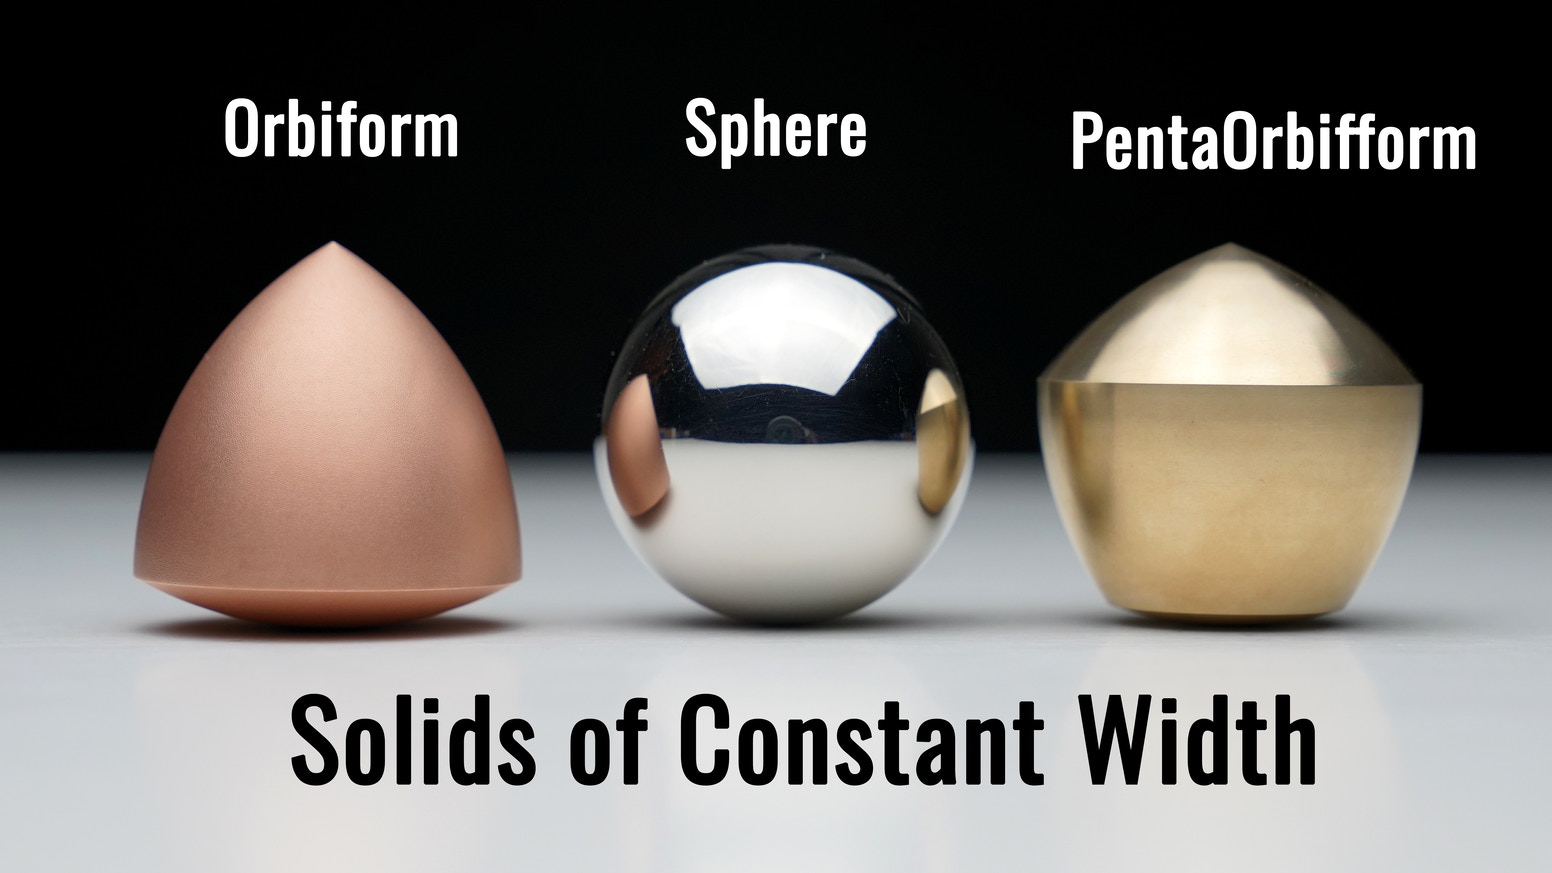 Precision machined solid Spheres designed to match our original solids of constant width, the Orbiform and PentaOrbiform.